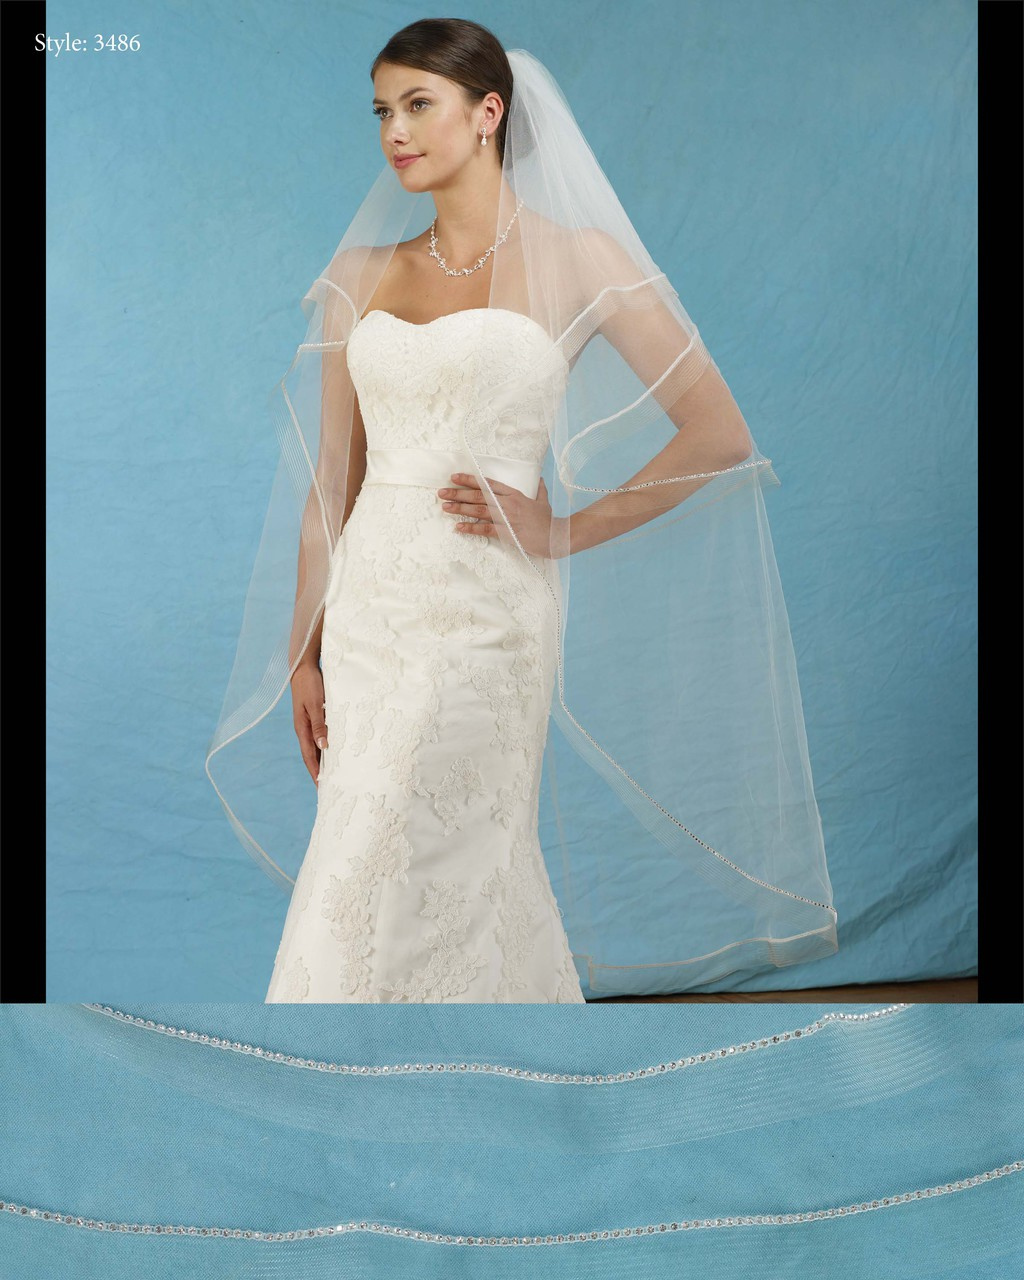 Marionat Bridal Veils 3486 - Oval Foldover Veil with Rhinestones and ...